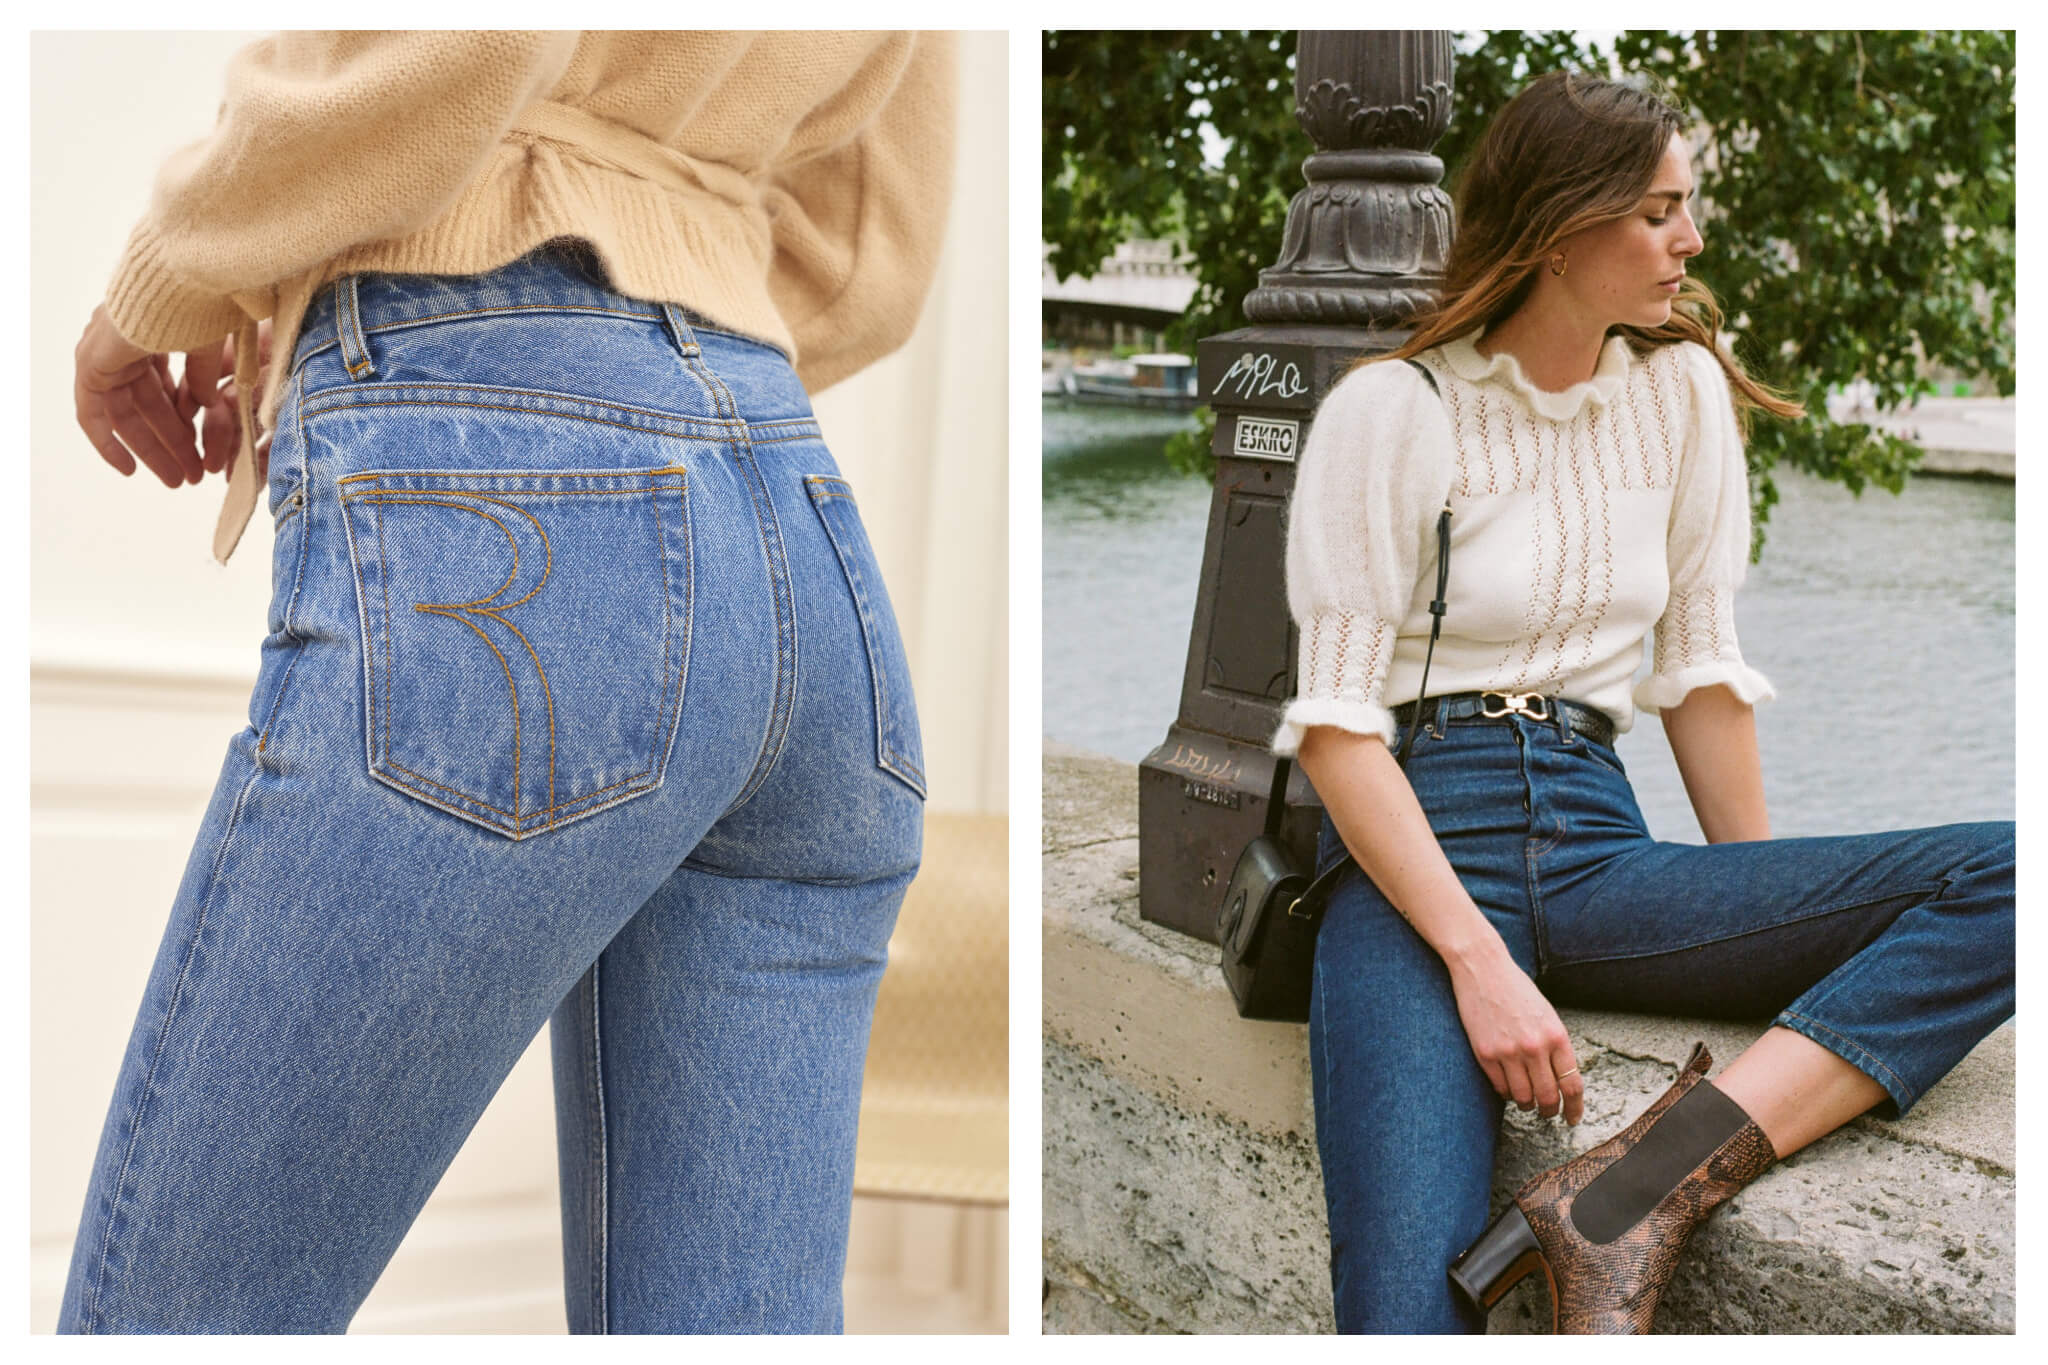 Right: a model's backside dressed in light blue jeans and a peach sweater. Left: a woman with long brown hair sits along the Seine in front of a lamppost dressed in blue jeans, a ruffled cream coloured shirt, and a small black hand bag on her shoulder.